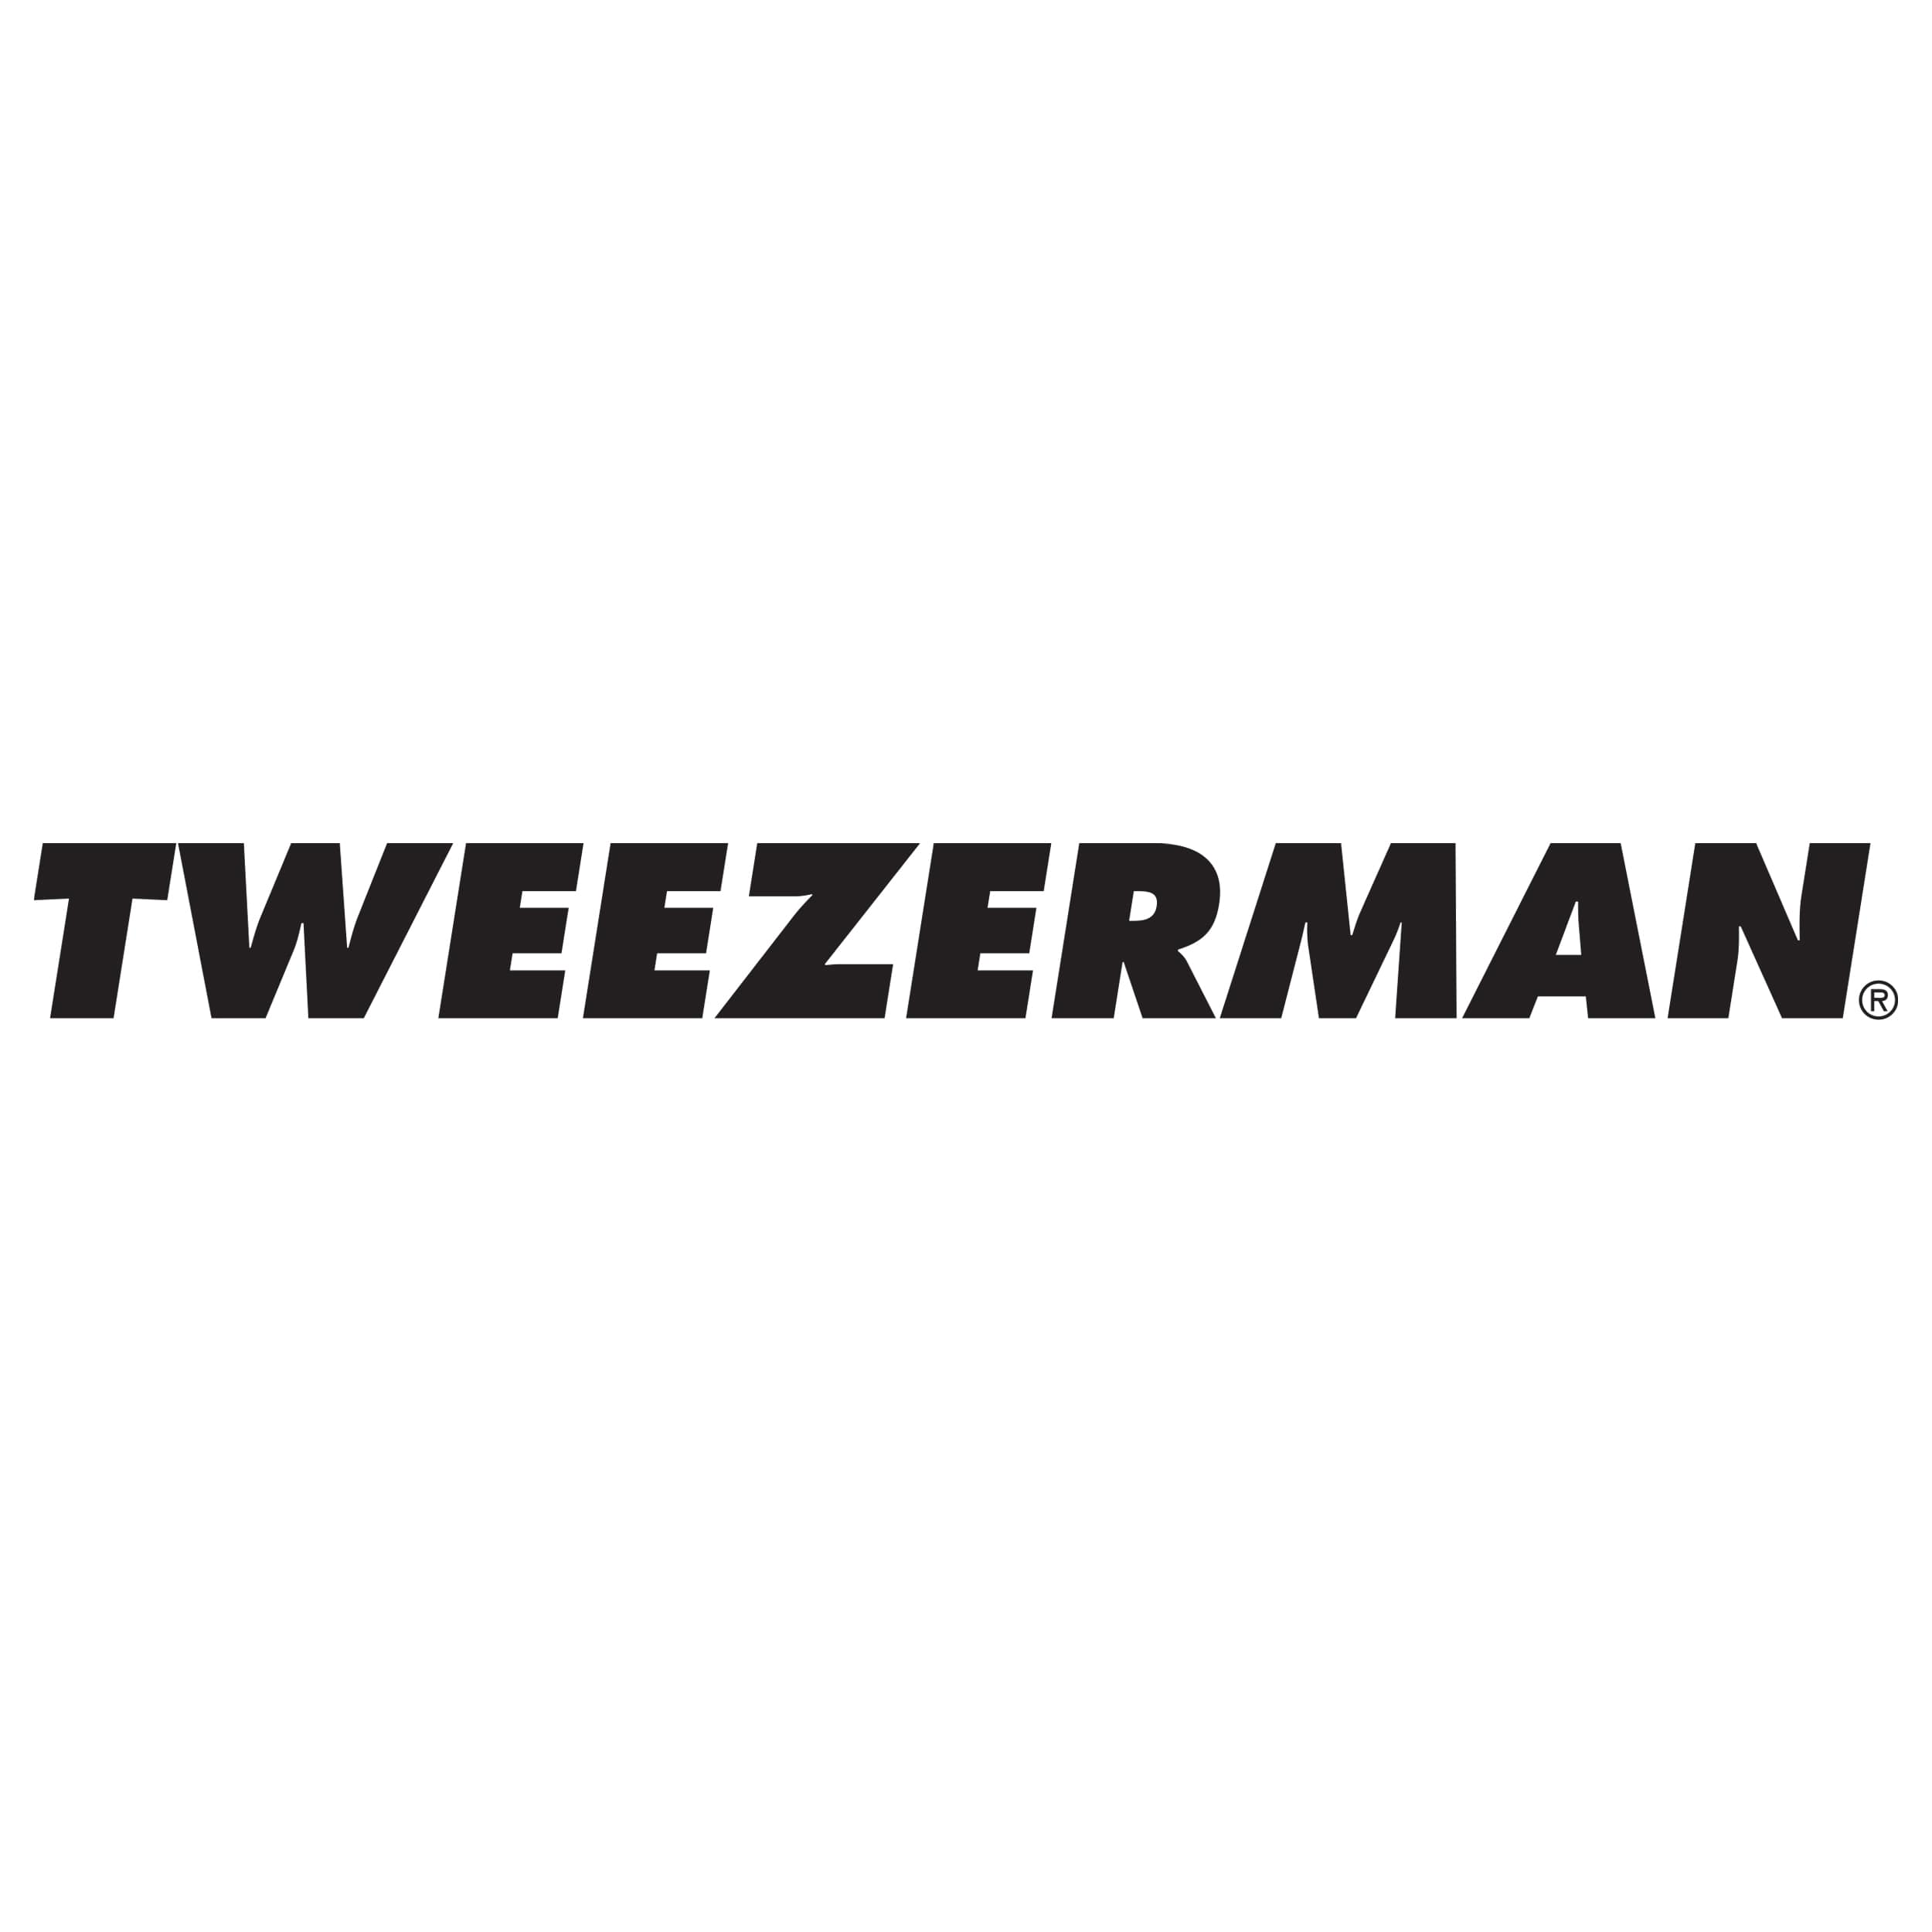 Neon Hot Filemates -  3466-R - Tweezerman UK